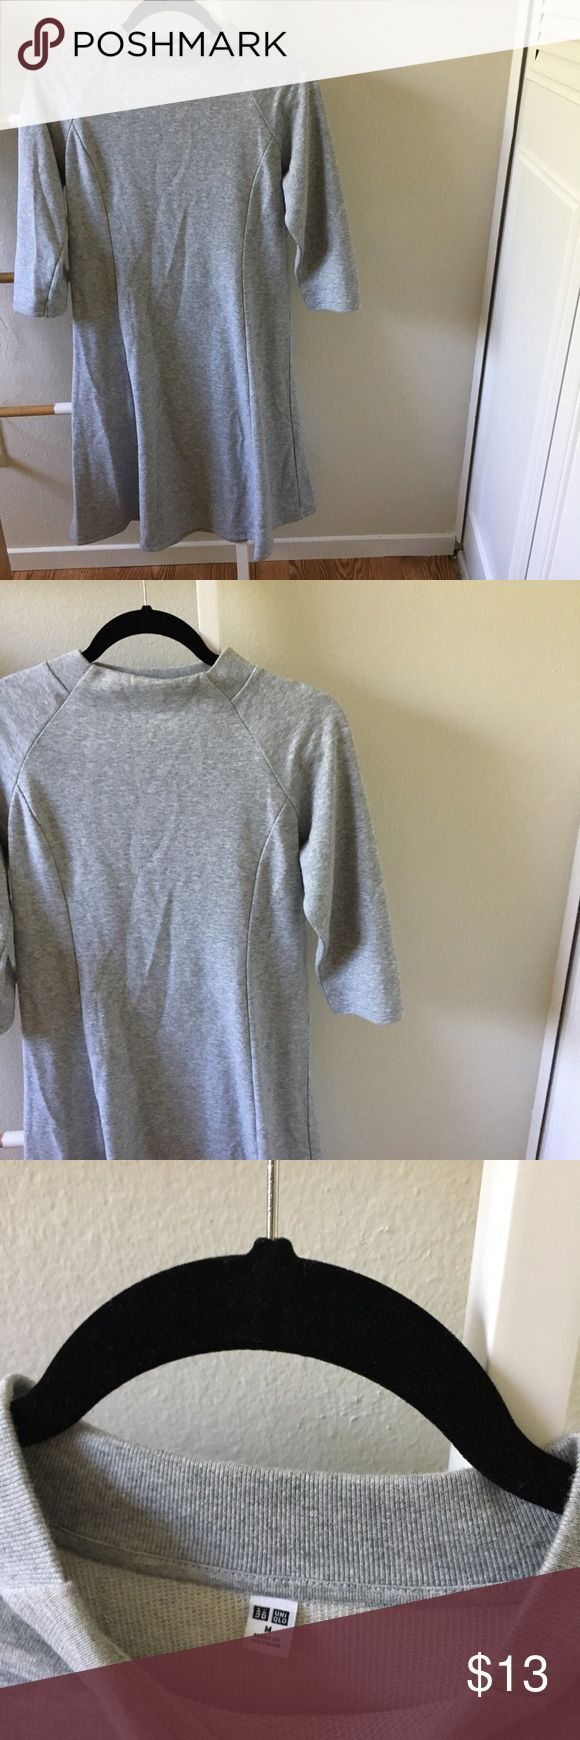 Uniqlo Sweater Dress Super cute Uniqlo sweater dress. Size medium, short sleeve, grey dress. Can be worn with heels or sneakers. Only worn once! Club Monaco Dresses